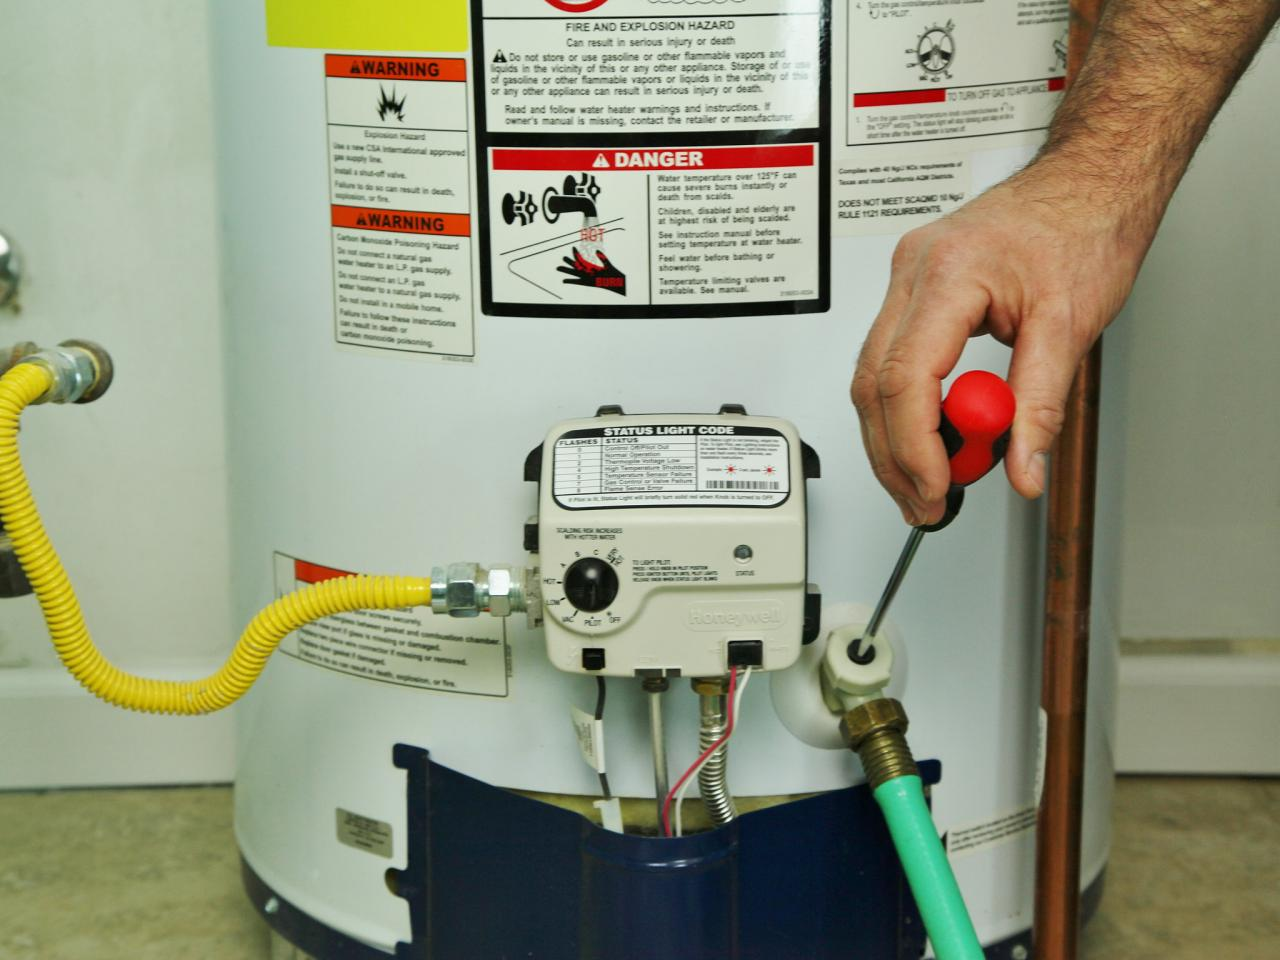 Water Plumbers Tutorial: How to Drain a Water Heater